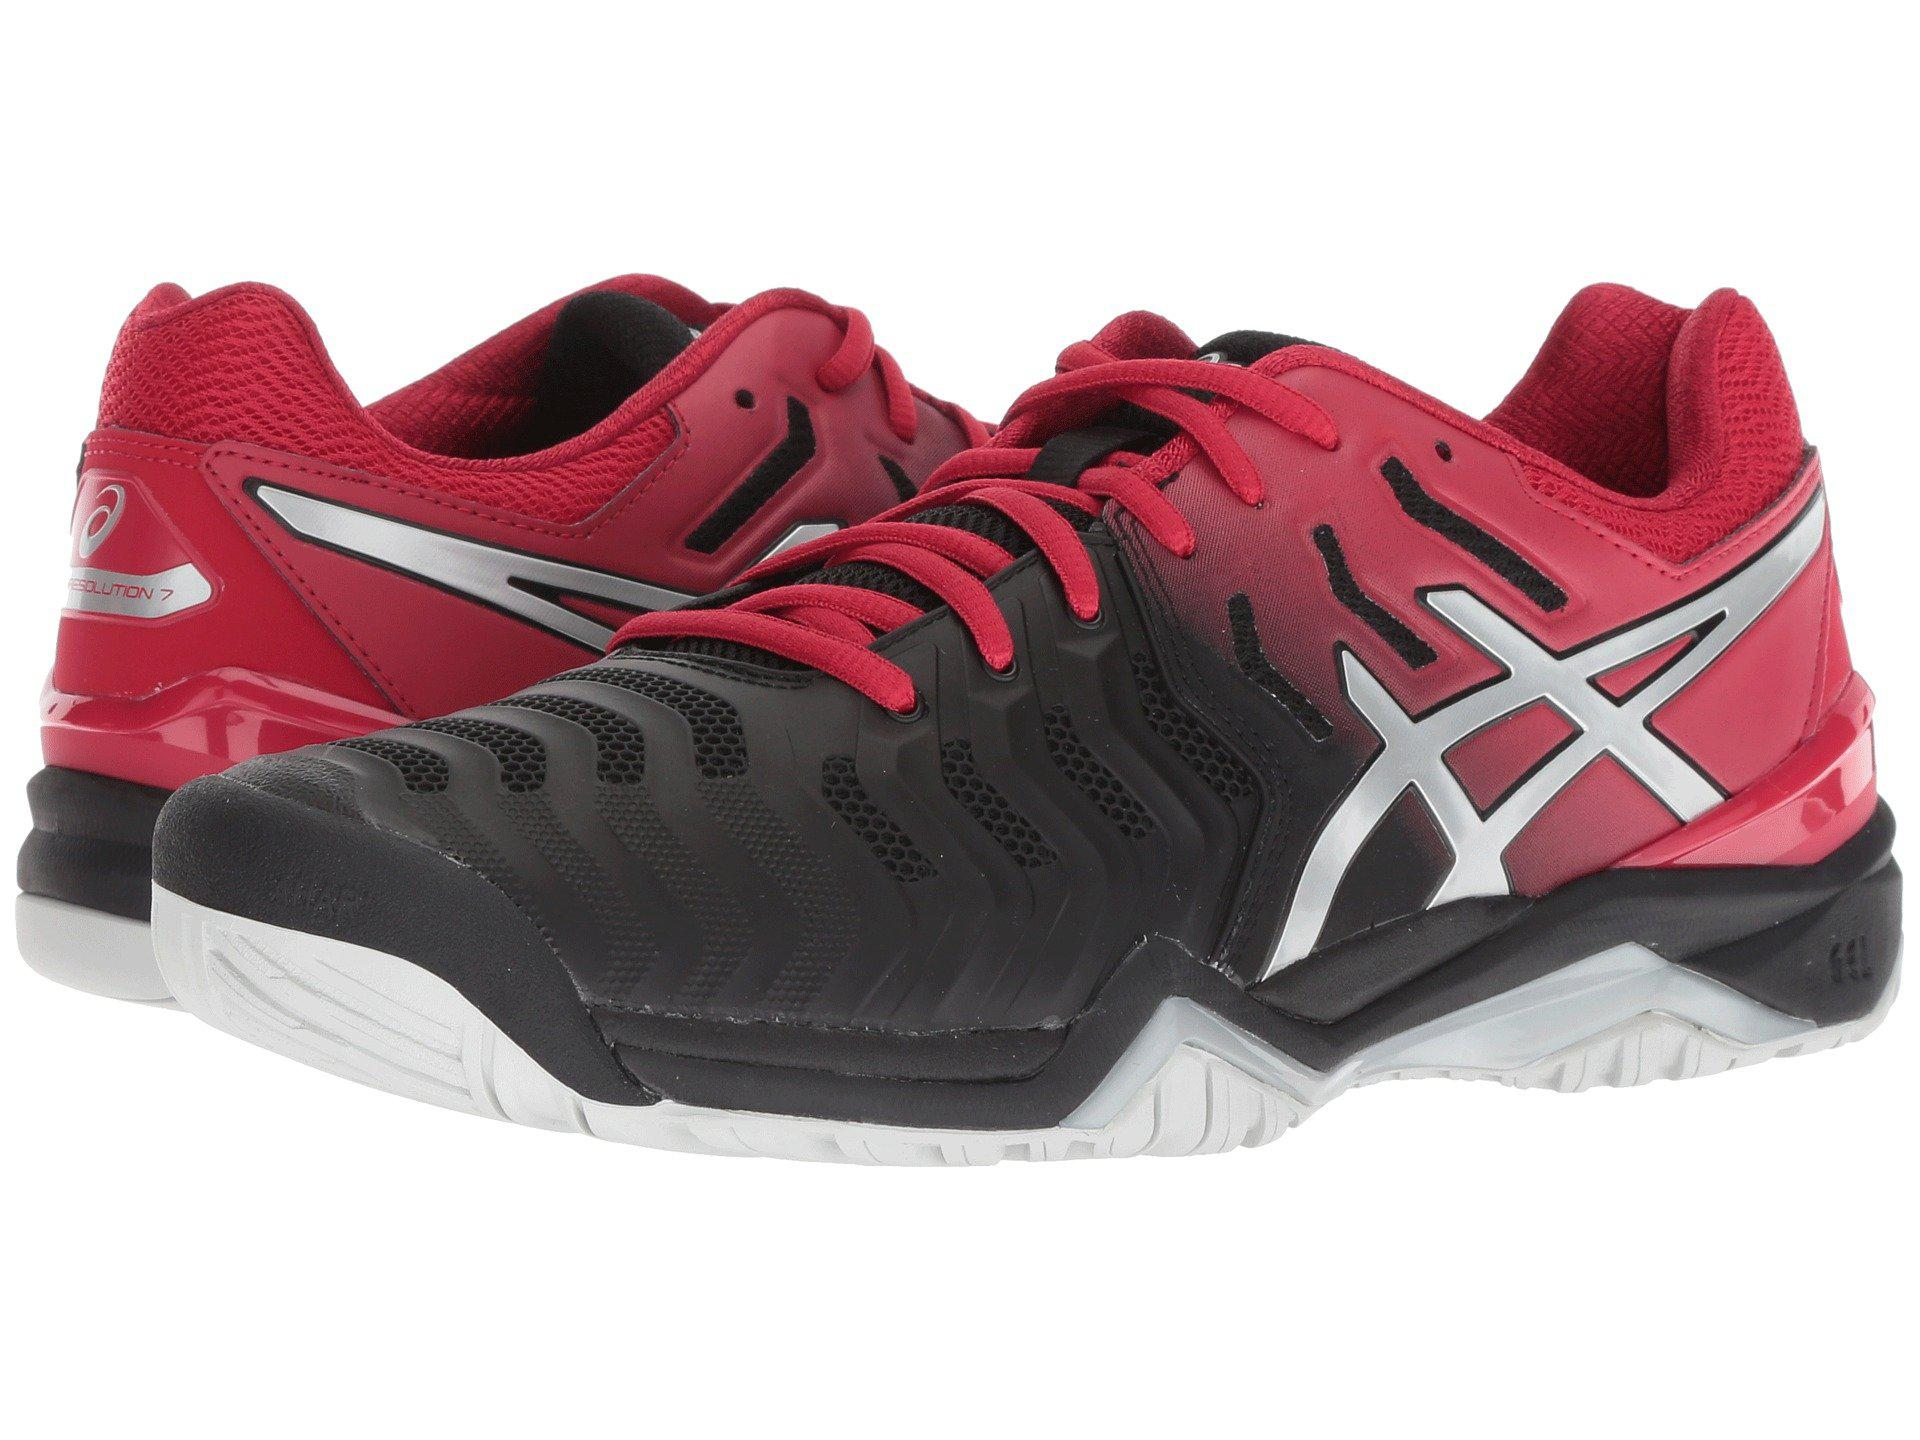 Shoes Gel Clay Resolution For Asics Tennis 7 Men Lyst  s vxFE0T bbc505fed